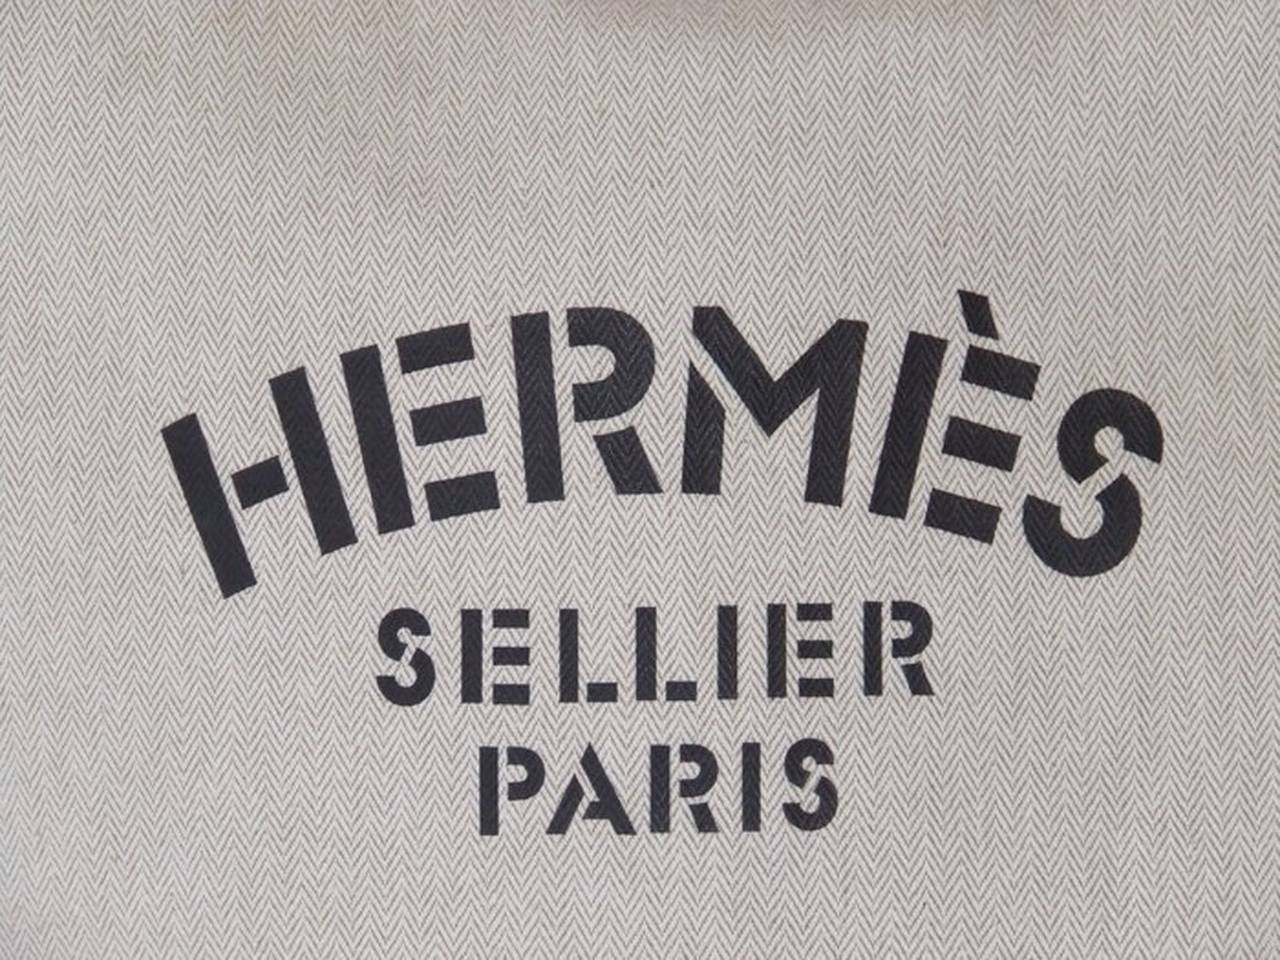 berkin bag price - Authentic Hermes Canvas Tote bag Canvas Leather at 1stdibs